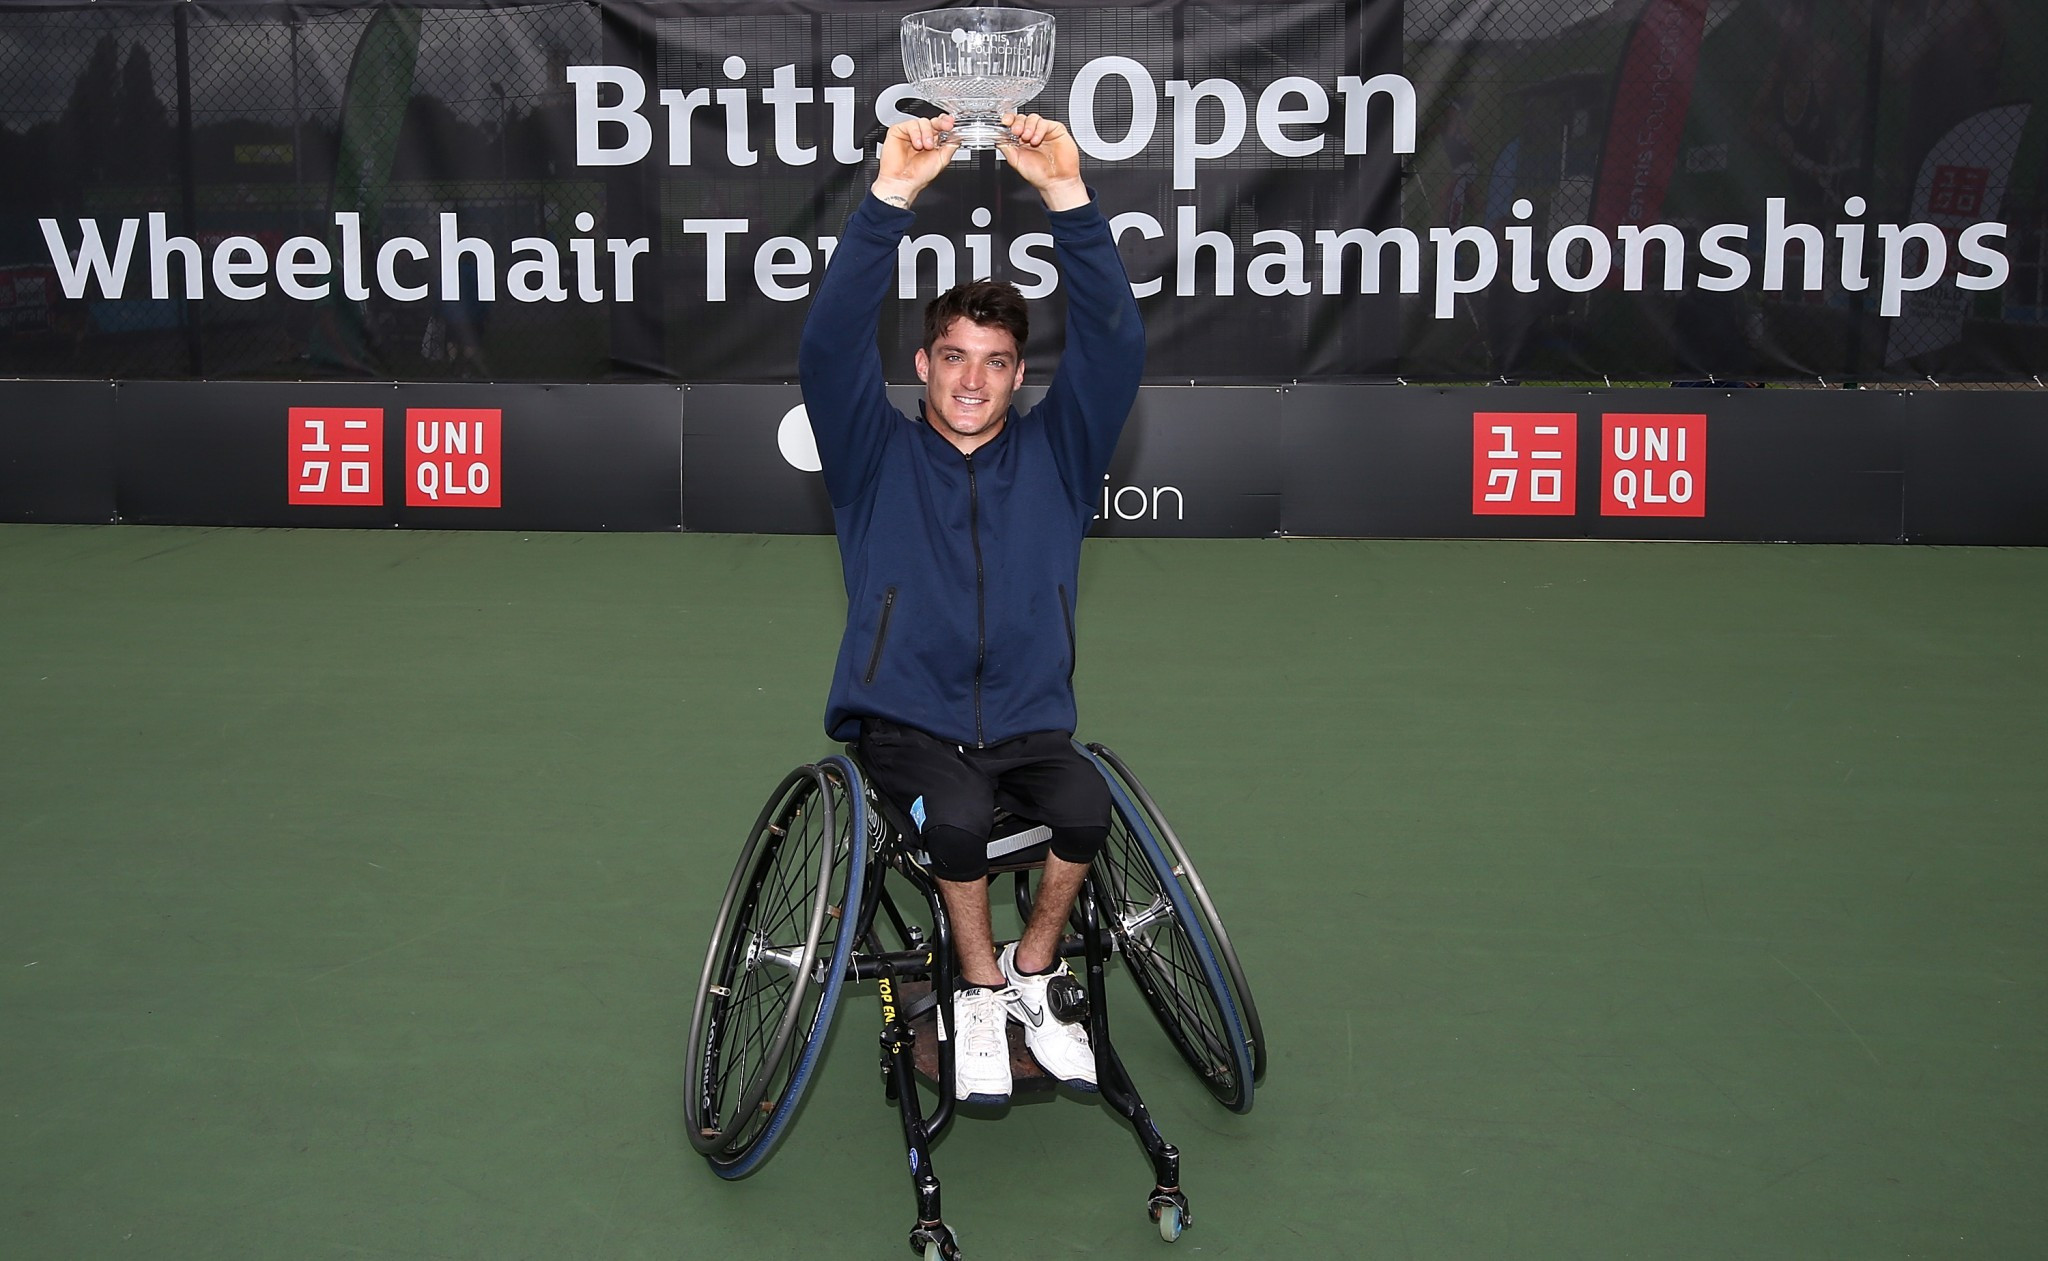 Gustavo Fernandez is top of the men's ITF wheelchair tennis rankings ©Getty Images